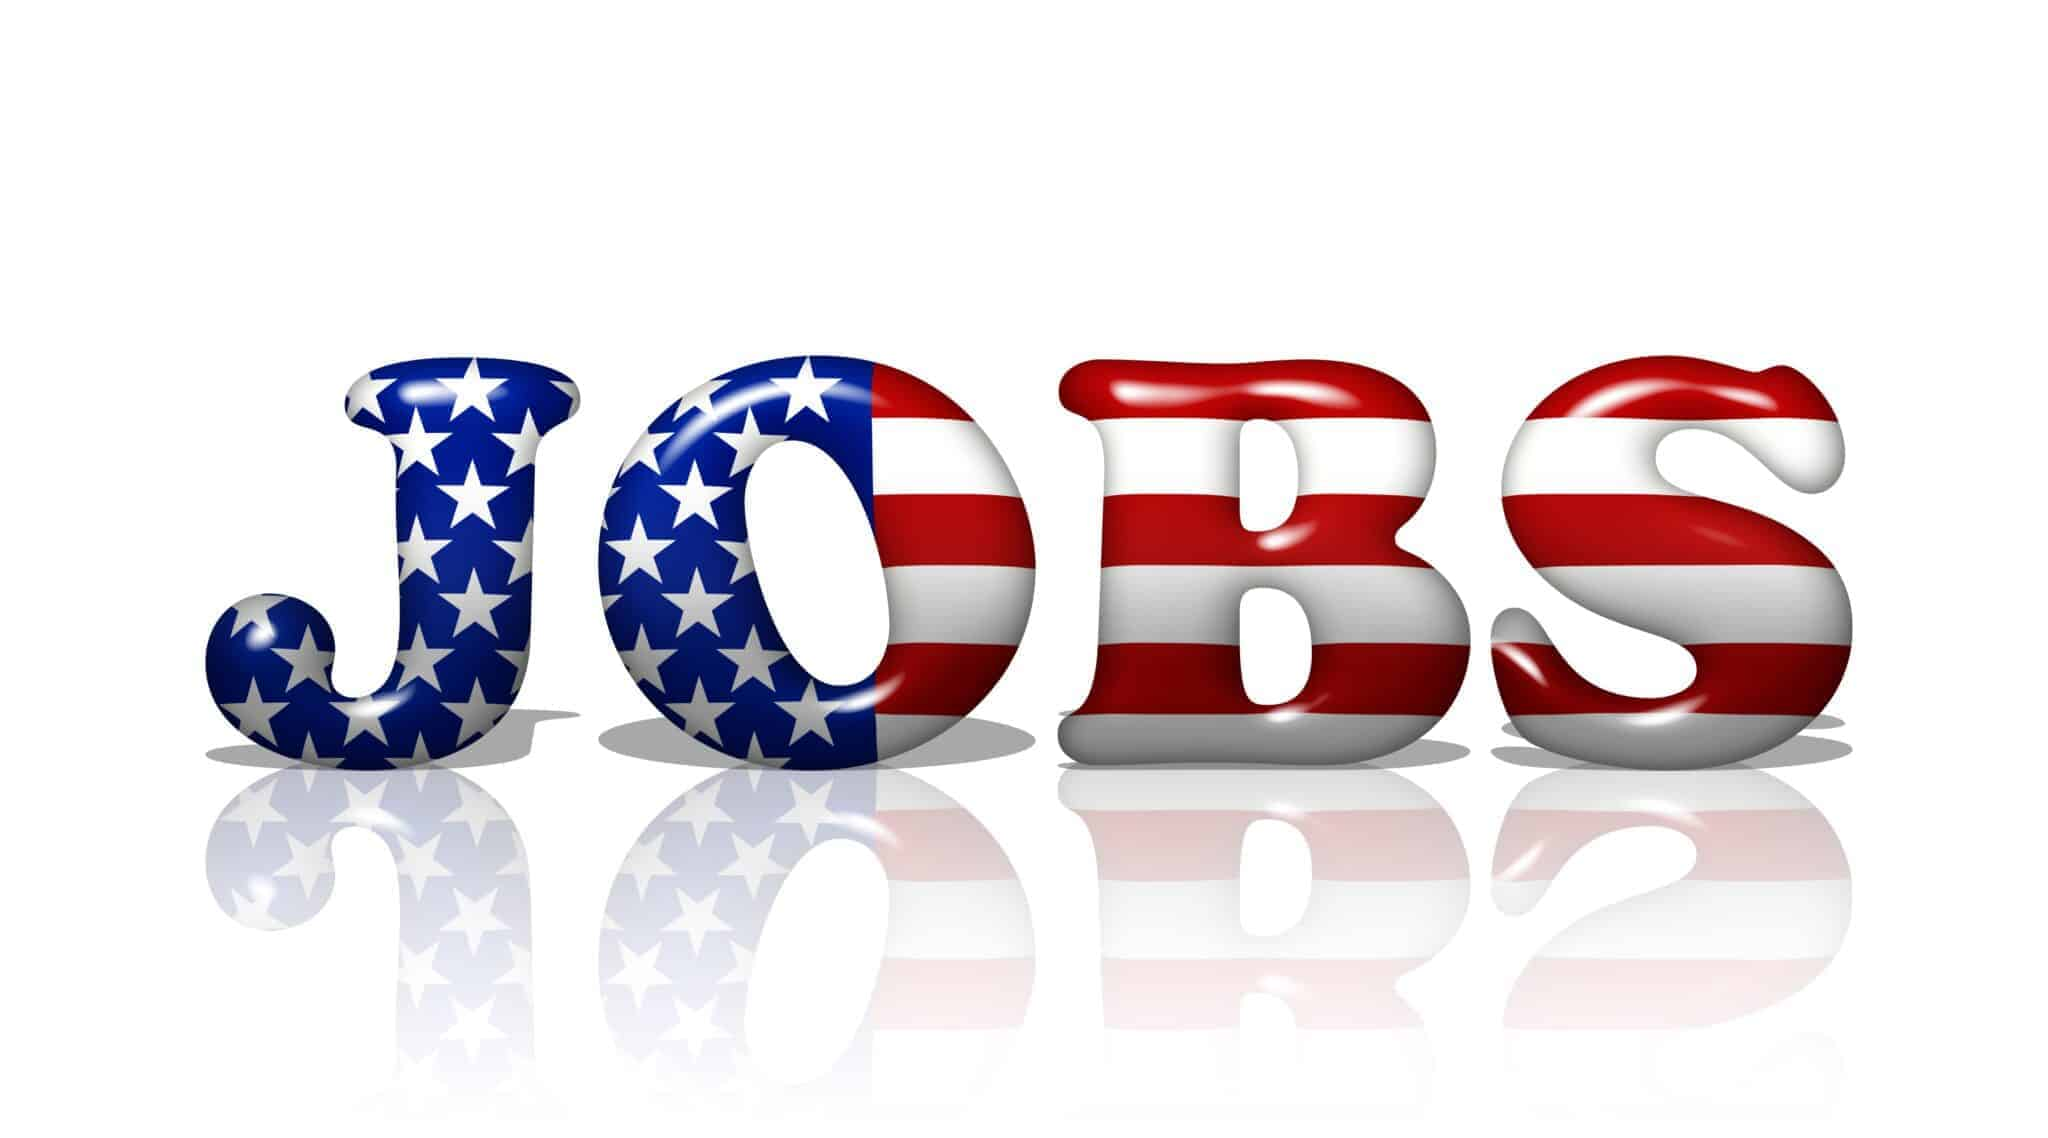 Word jobs in balloon and US flag font